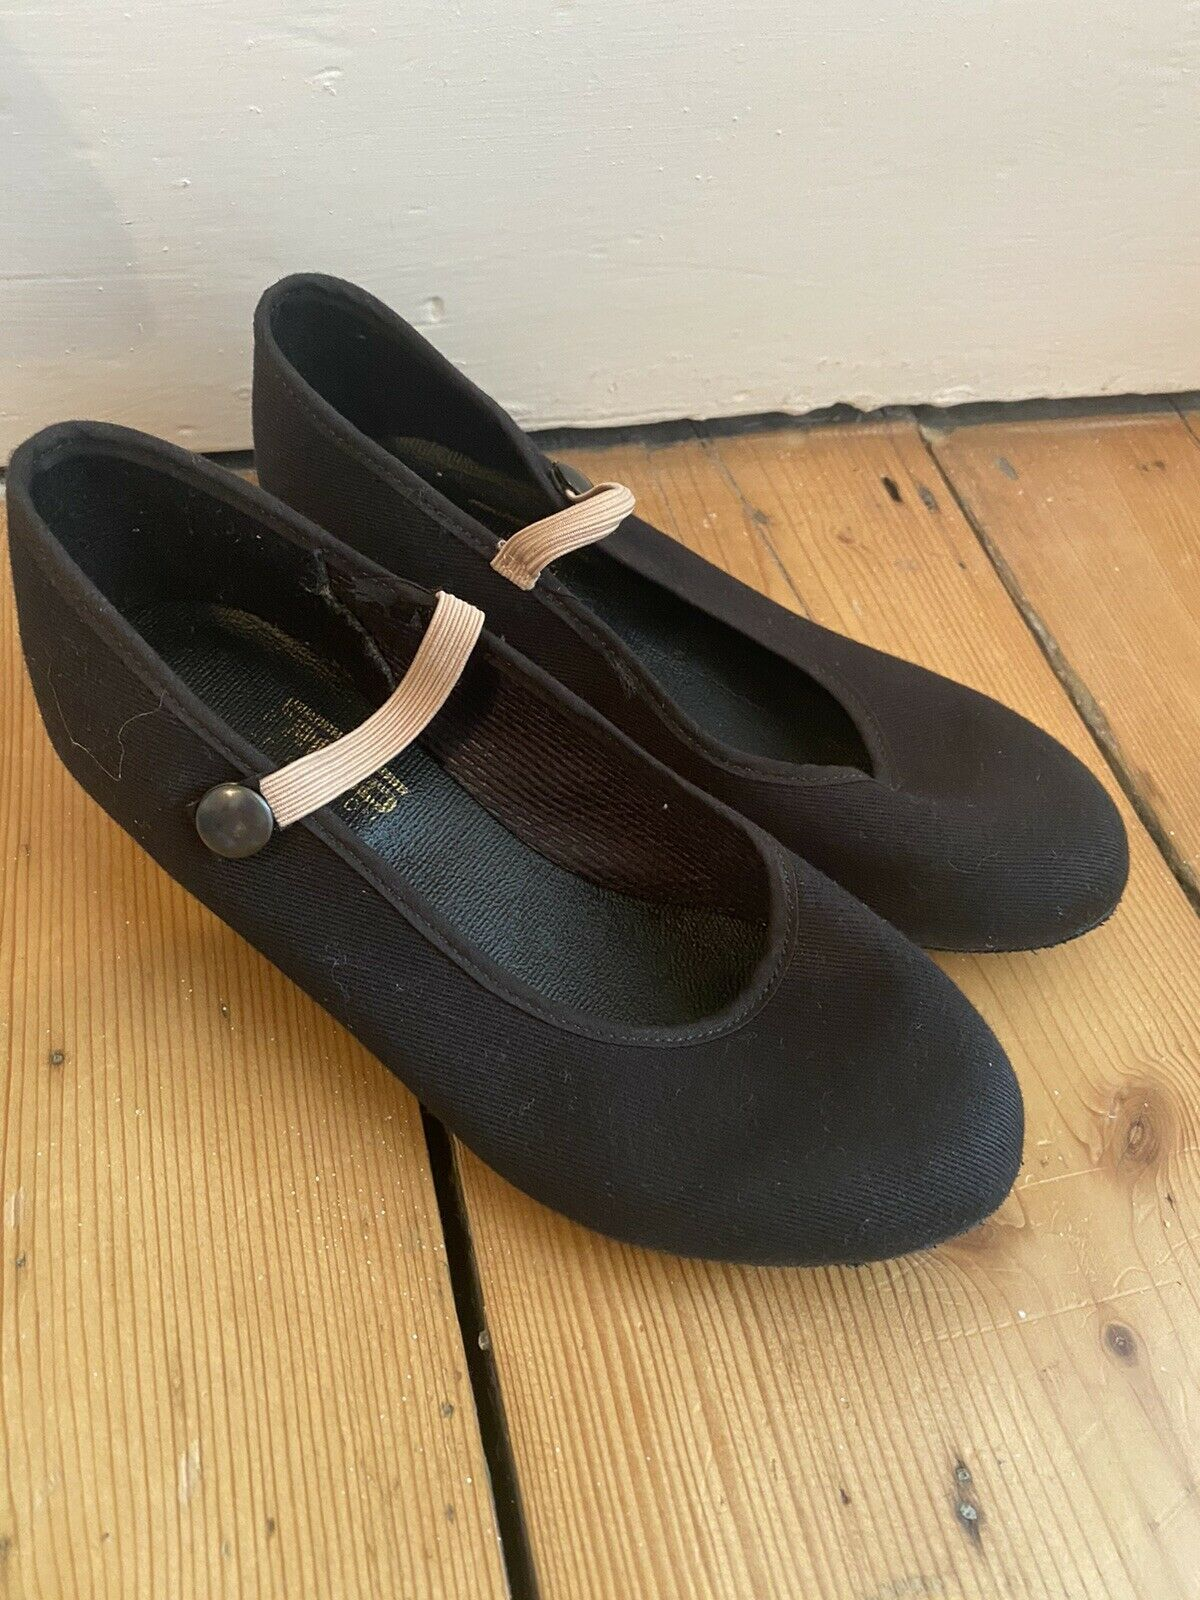 Size 13 Ballet Character Shoes Barely Worn.